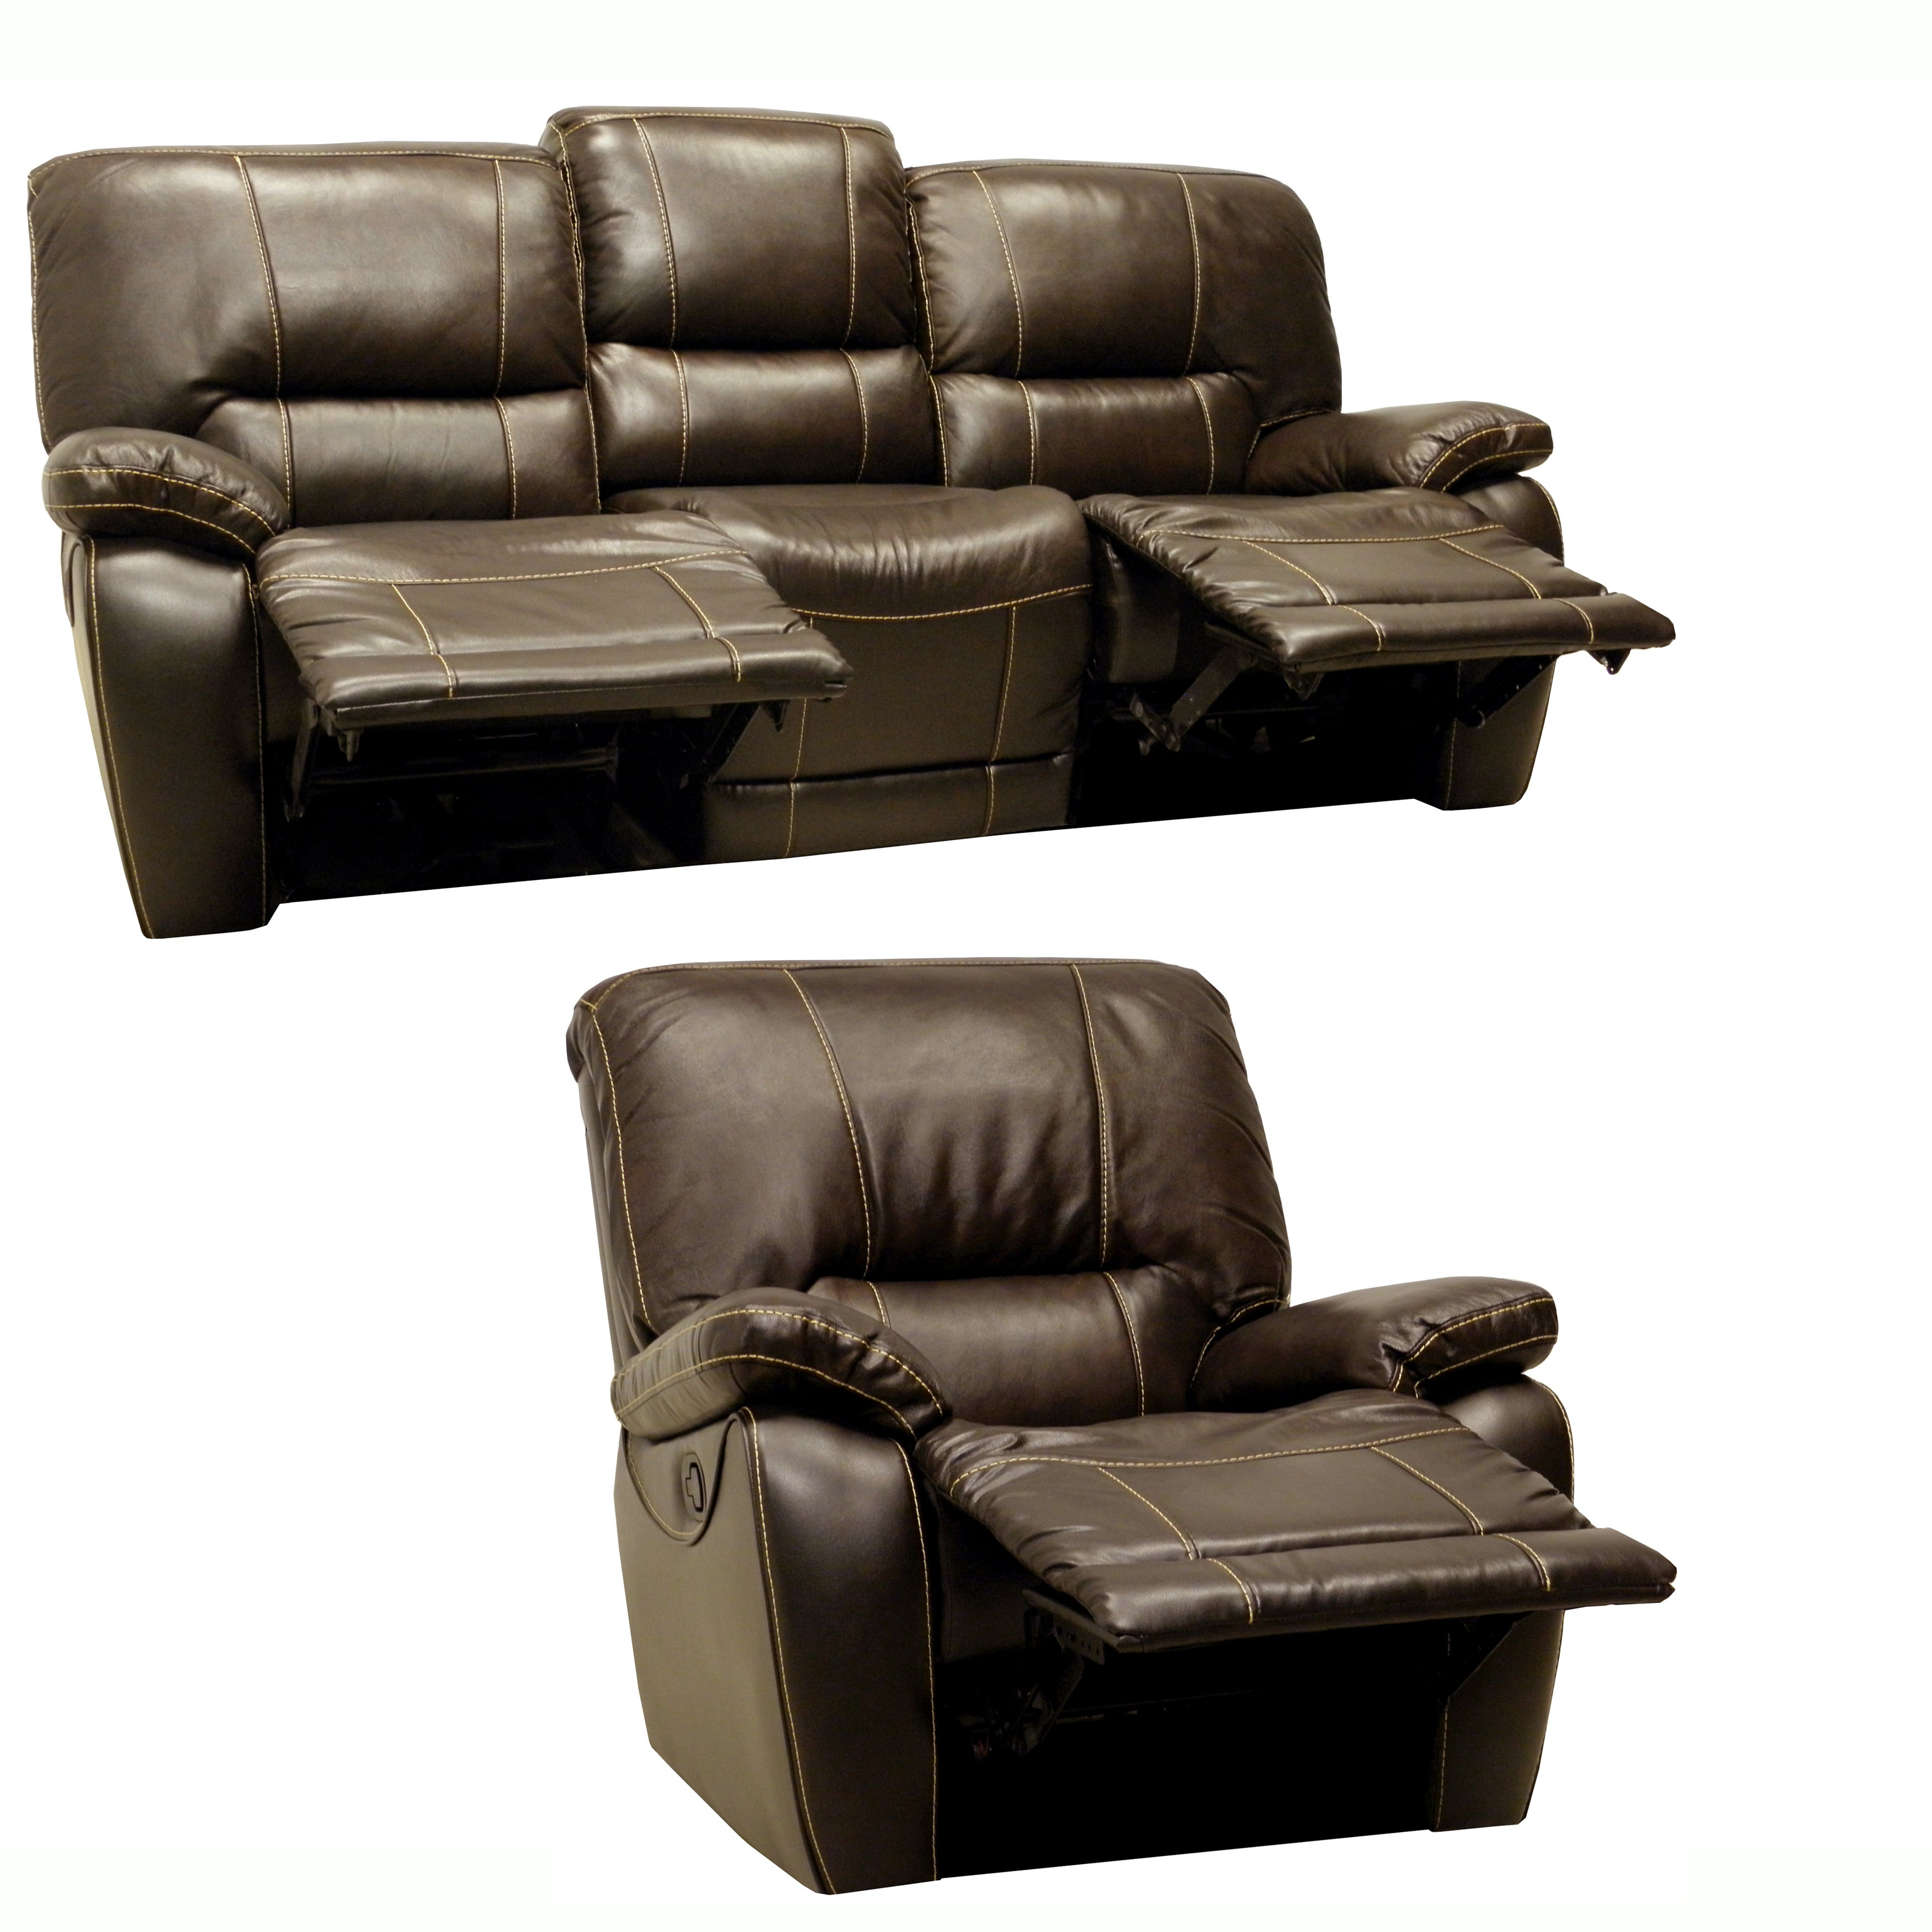 Walton Brown Leather Motorized Reclining Sofa And Glider Recliner Overstock Shopping Big